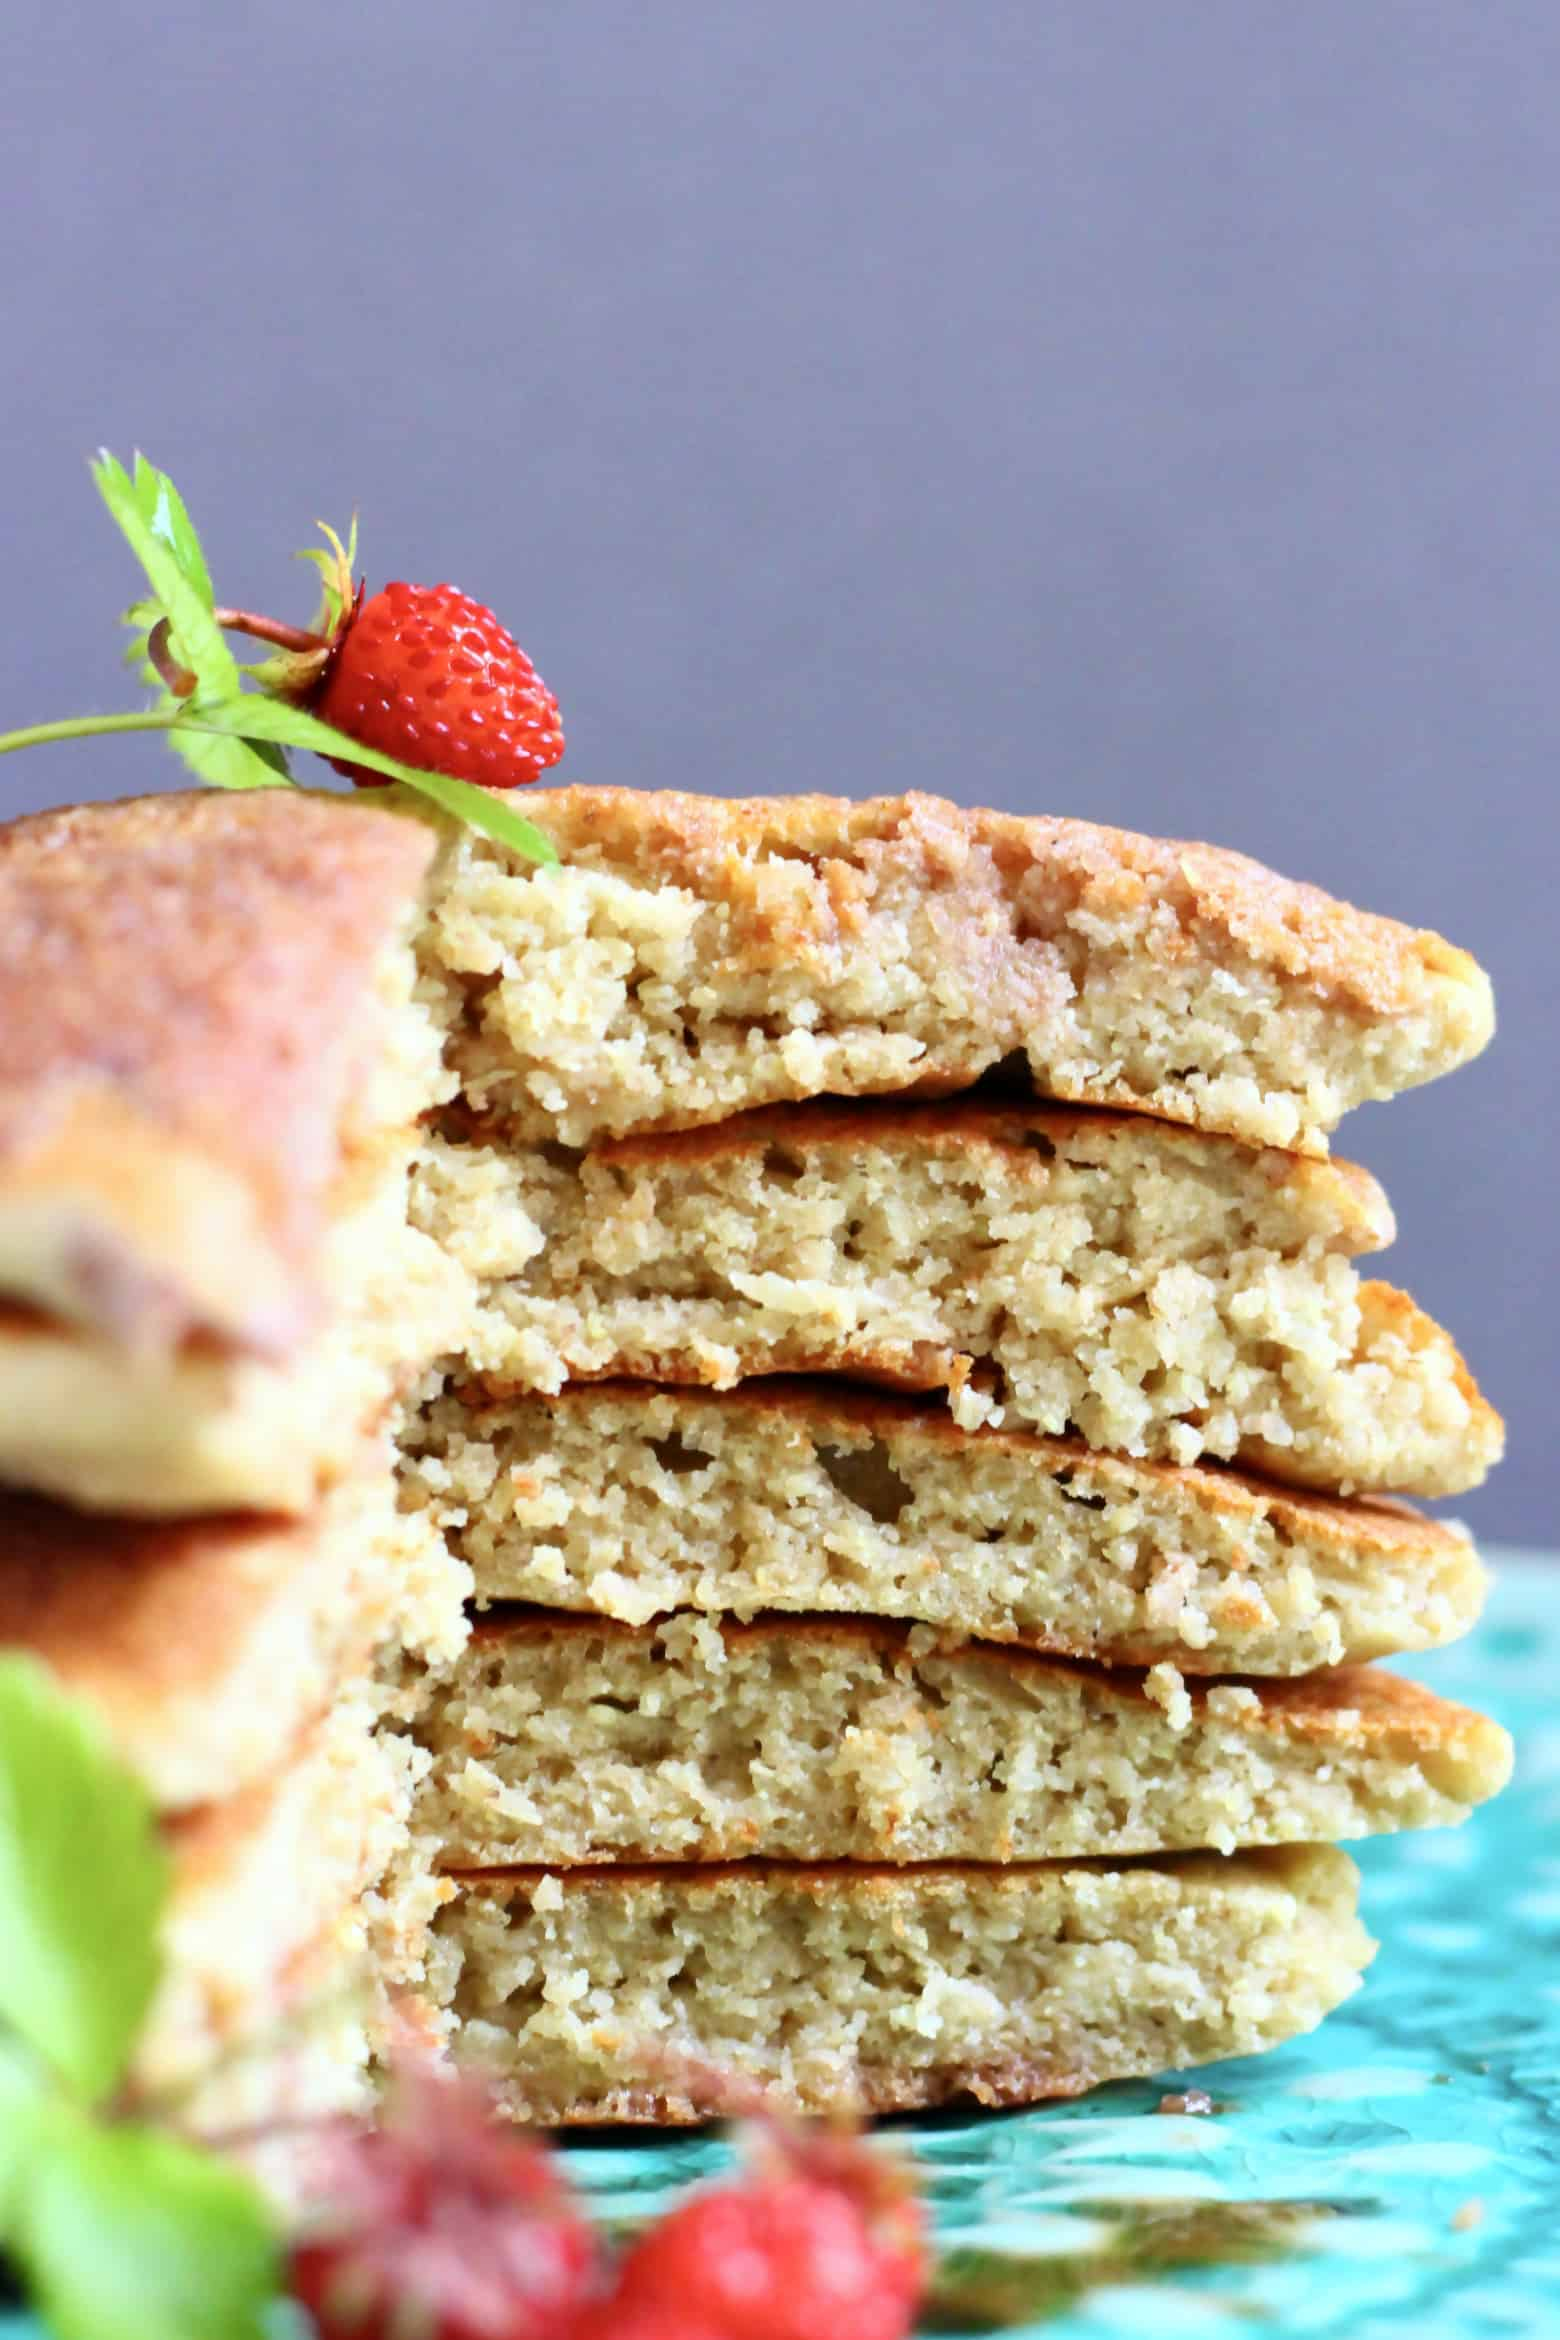 A sliced stack of five quinoa pancakes on a plate